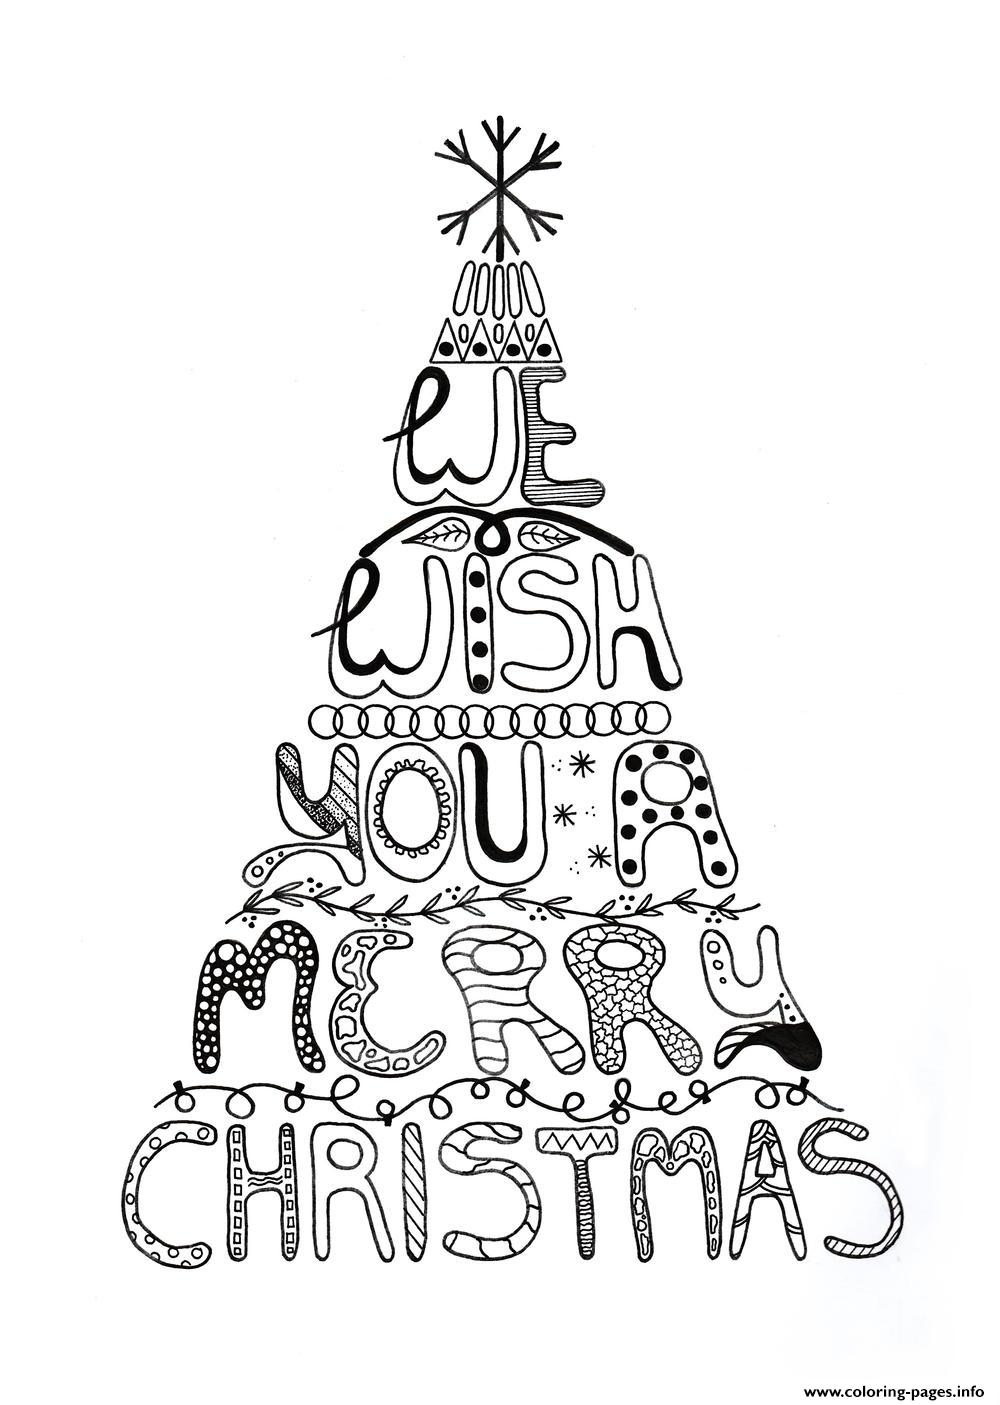 graphic regarding Merry Christmas Printable identified as Merry Xmas Grownup Tree Coloring Internet pages Printable